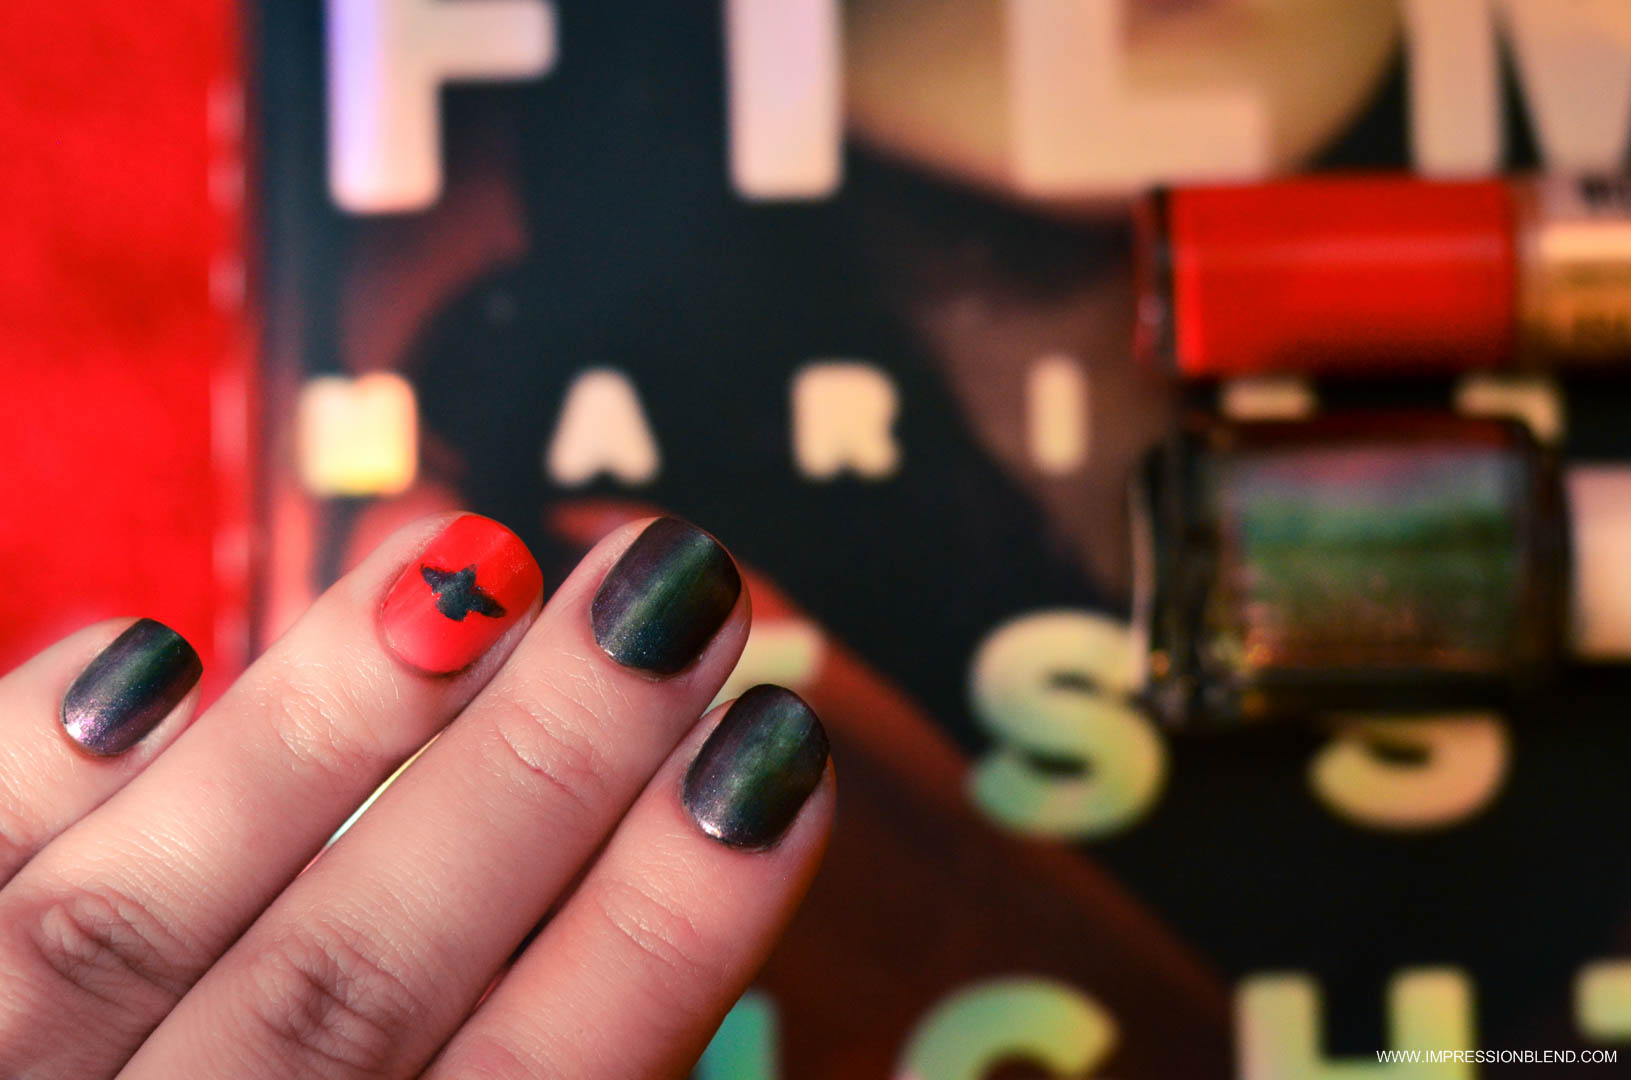 Nails inspired by Night Film